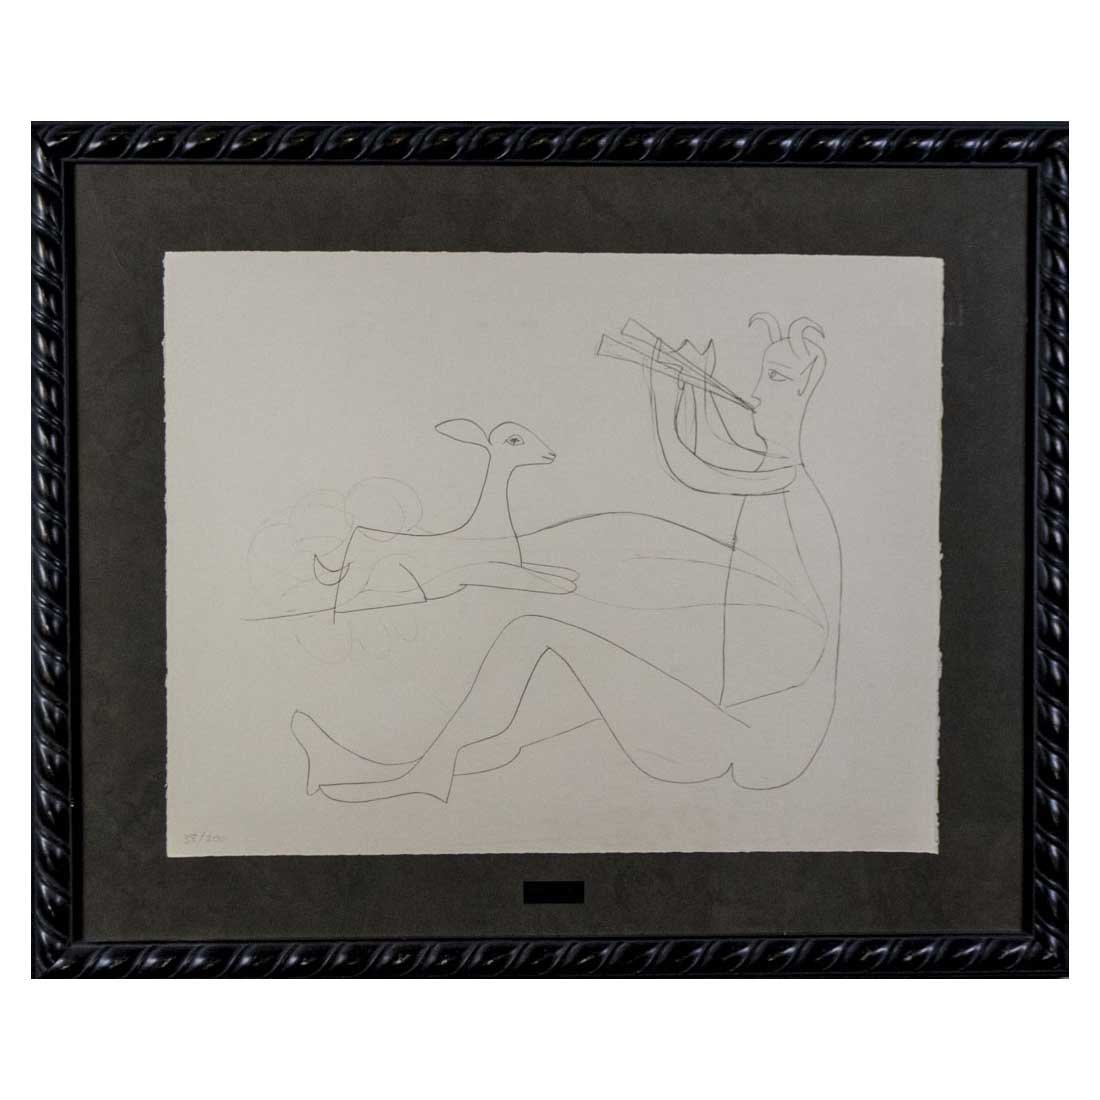 Picasso - Untitled from Mes dessins d'antibes - 2